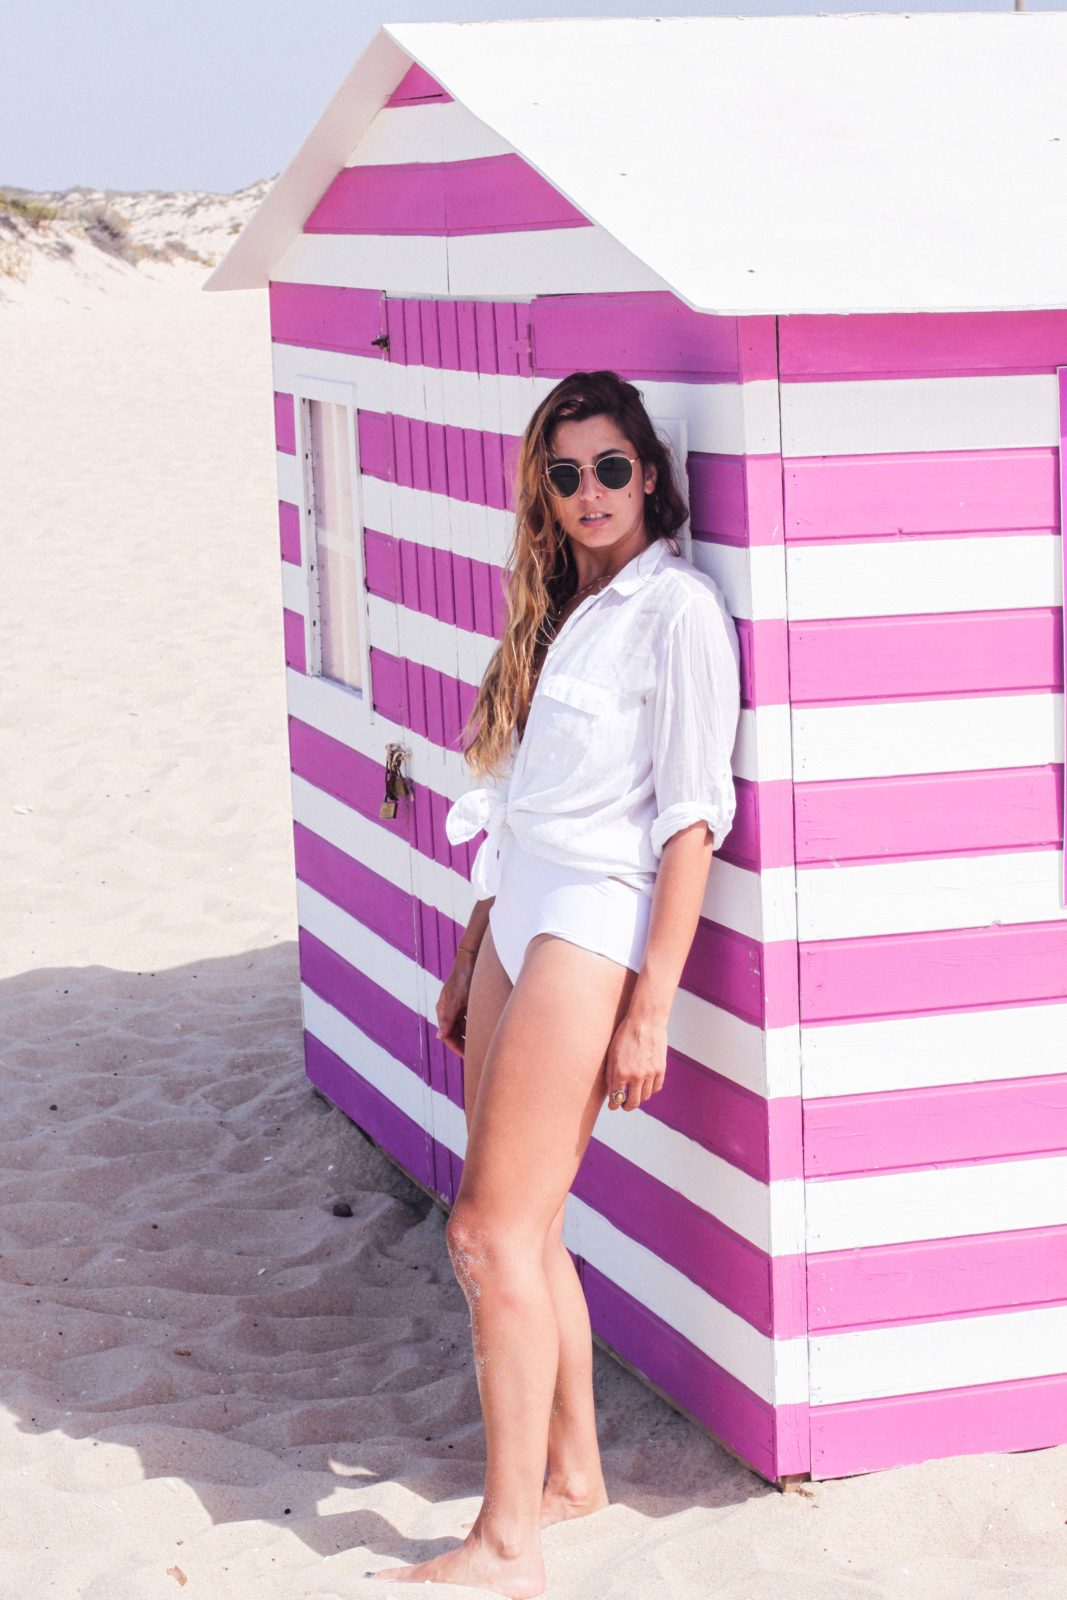 swimsuit_white_shirt_beach_comporta_carvalho_portugal_alentejo_trip-28